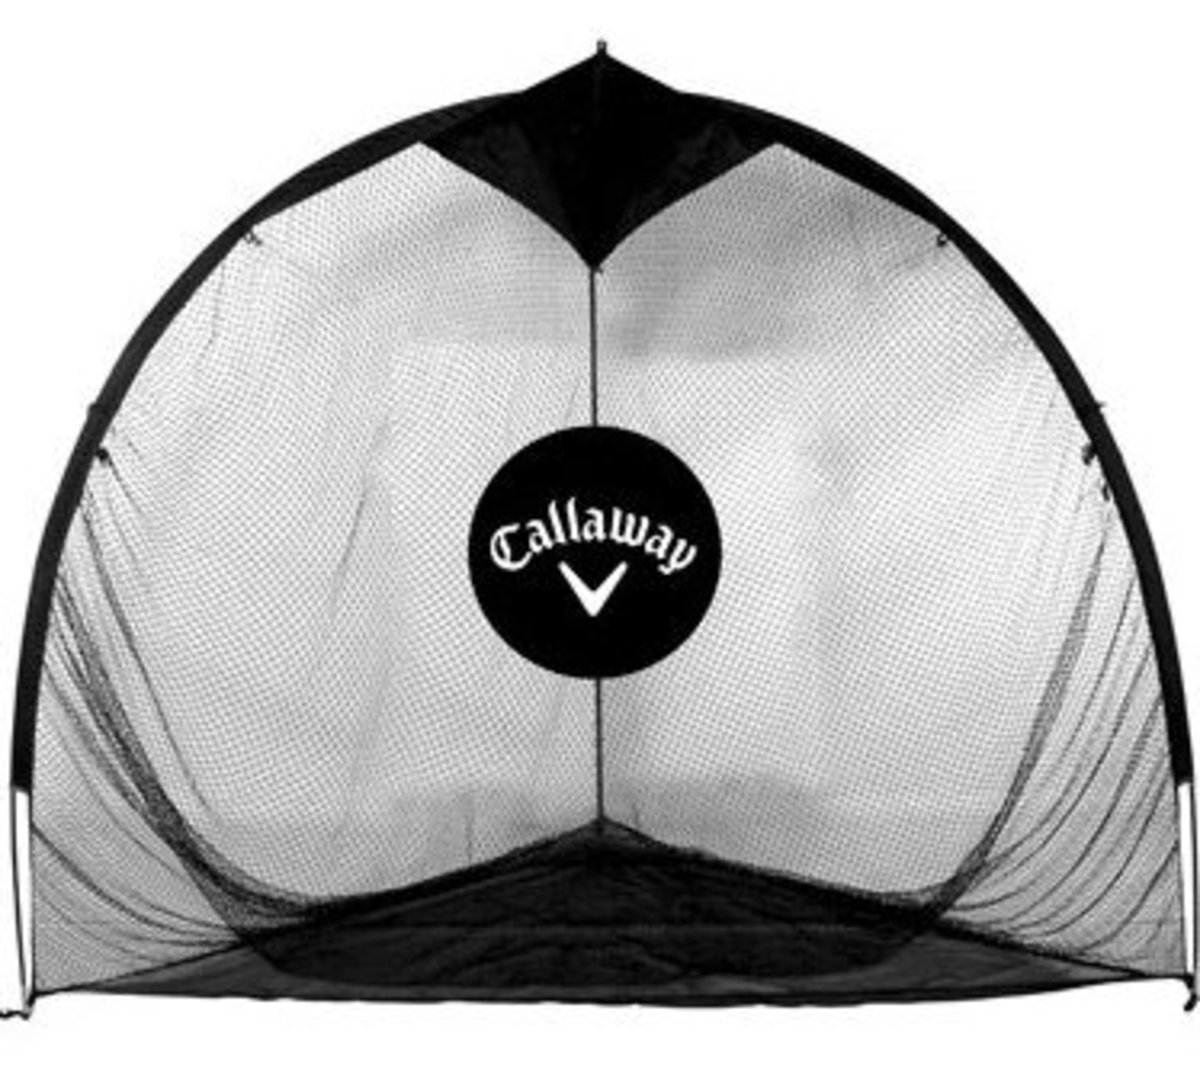 The Tri-Ball by Callaway is an affordable but effective practice product for beginners and seasoned golfers alike.